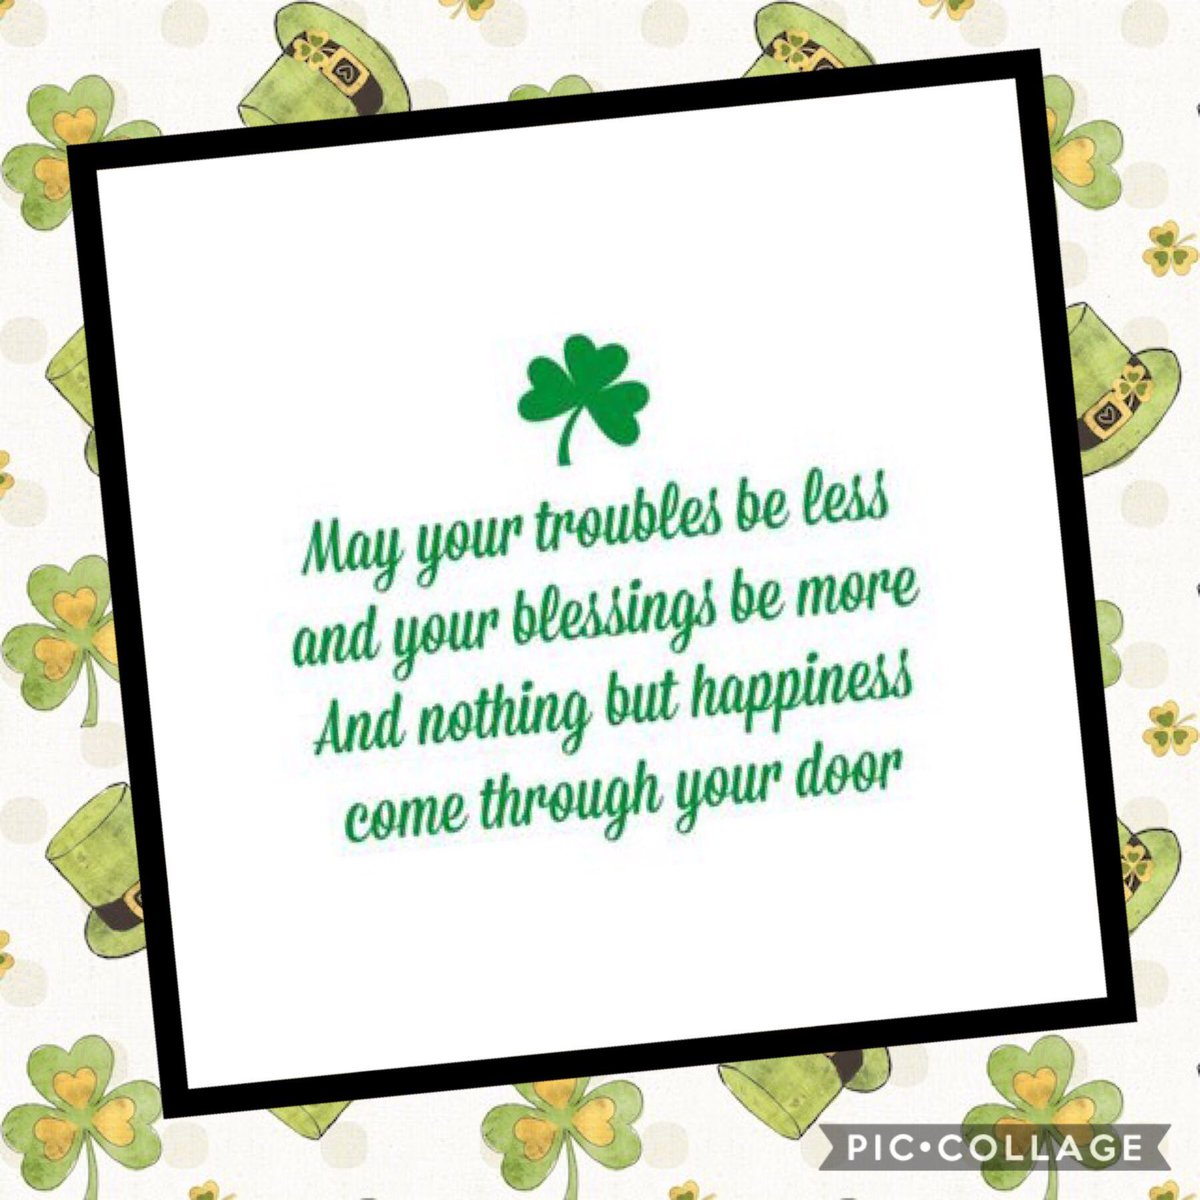 Happy St. Patrick's Day to all!  🍀🍀🍀 https://t.co/ZpV8abPNaC